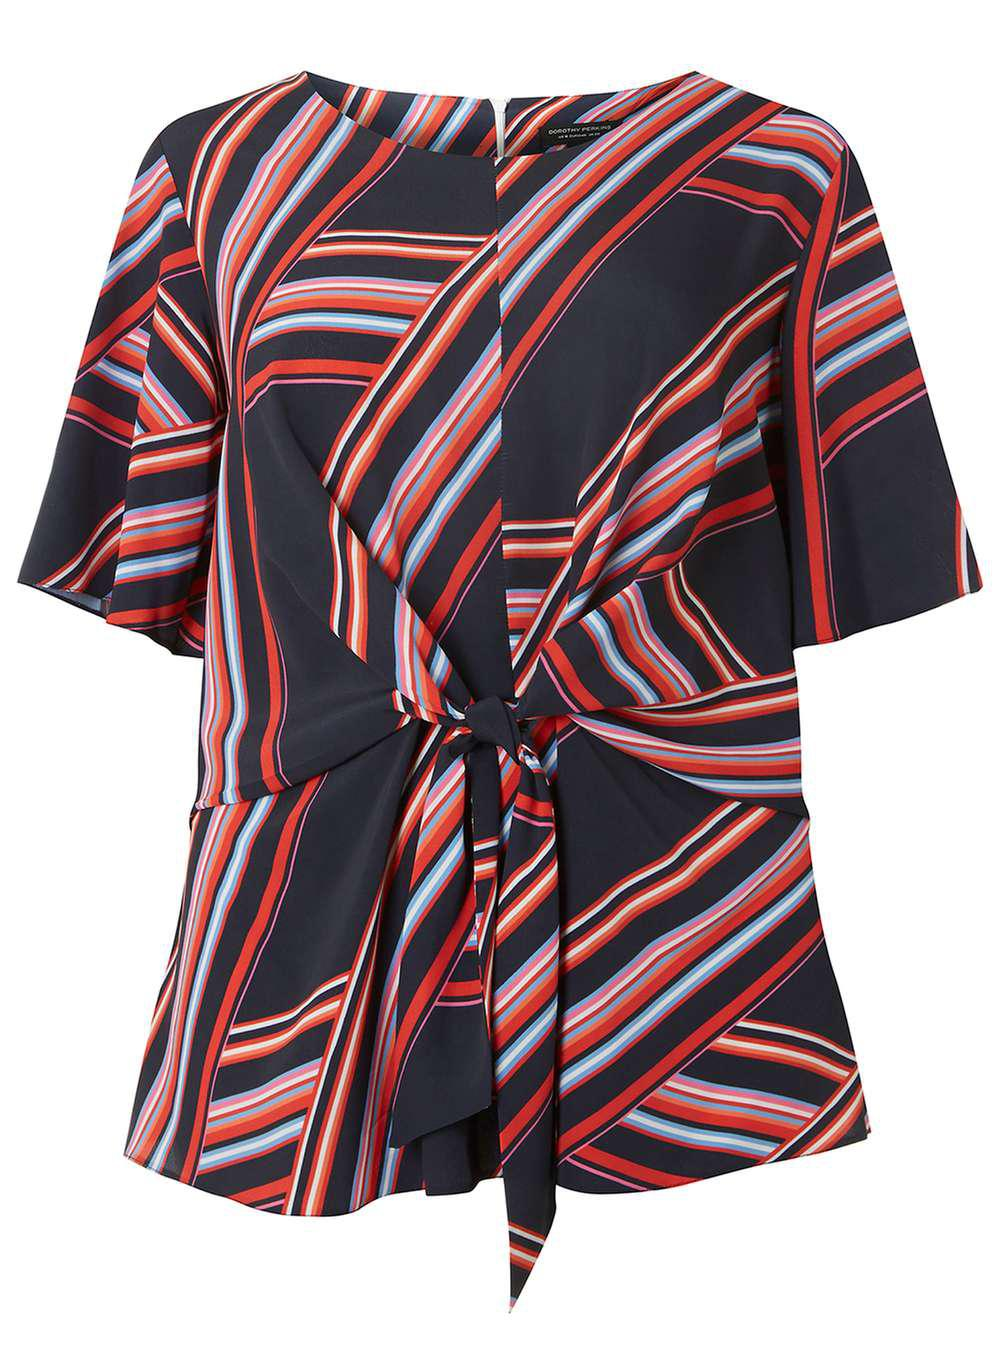 Cheap Price Dorothy Perkins Womens **DP Curve Multi Colour Striped Manipulat Blouse- High Quality Online KrhTwV8